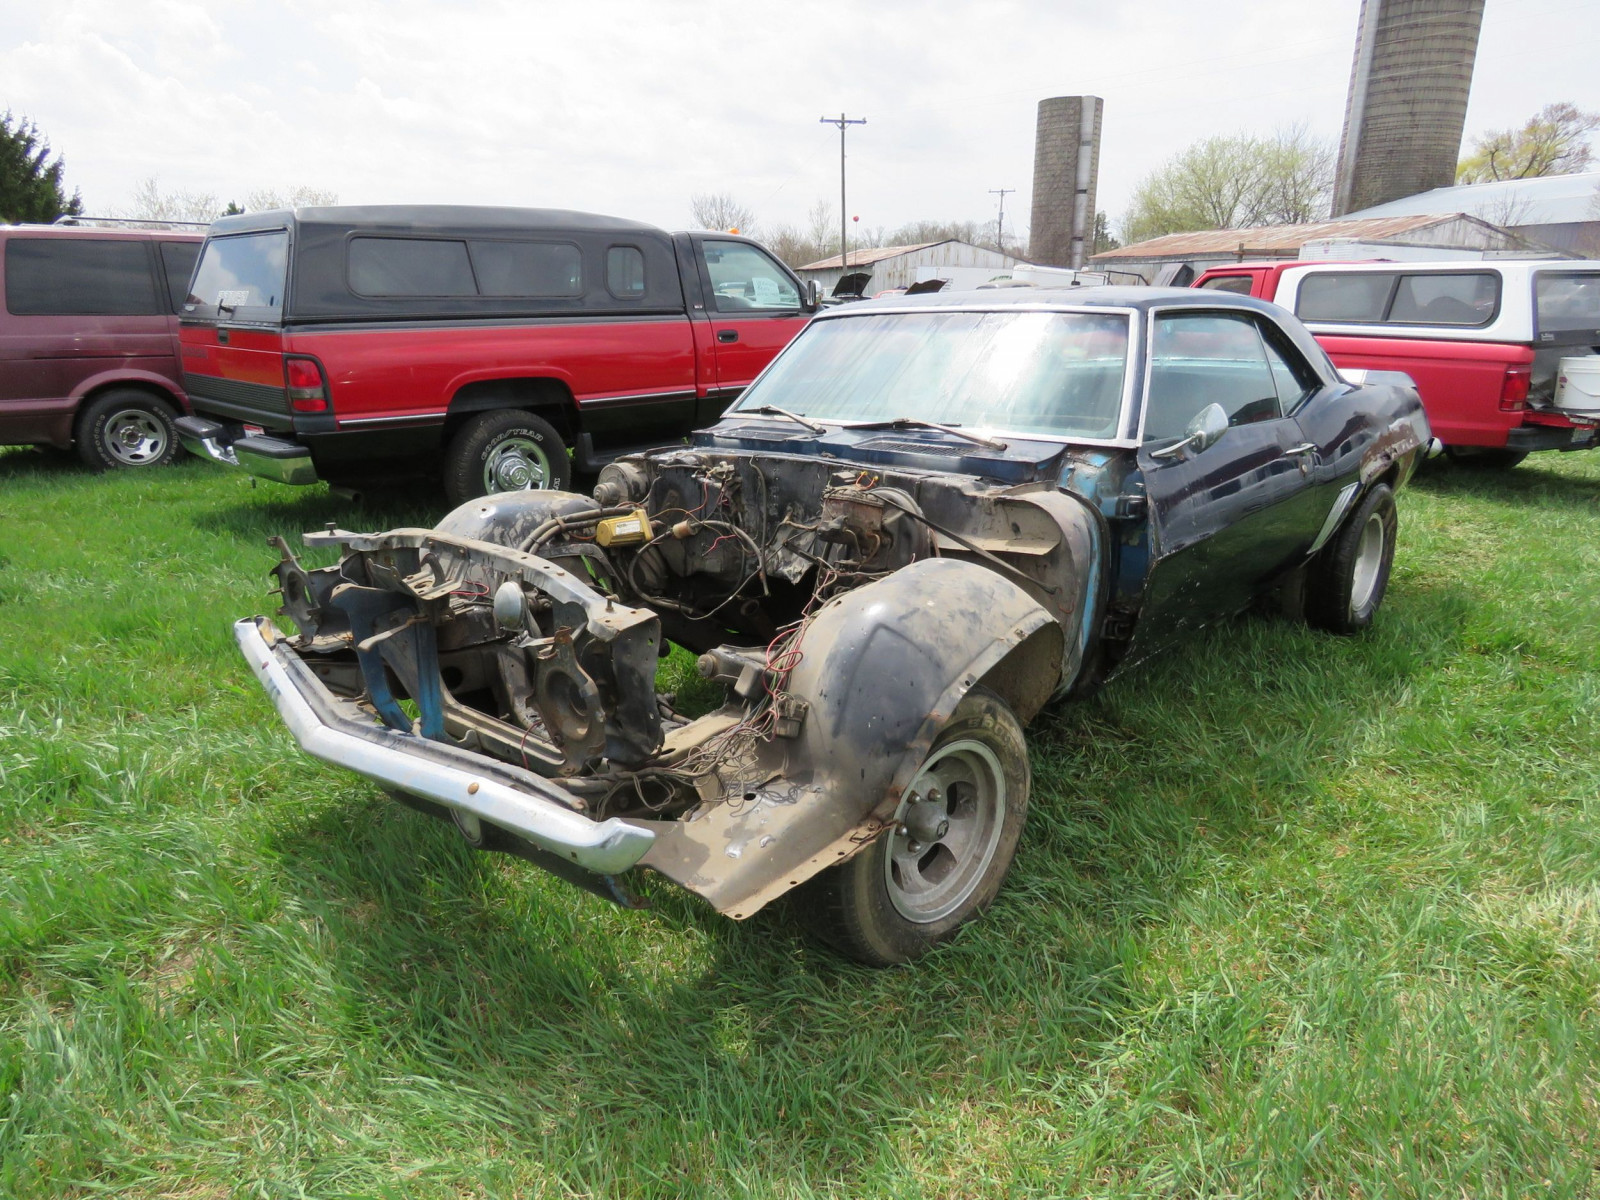 1969 Chevrolet Z28 Camaro For Restore - Image 1